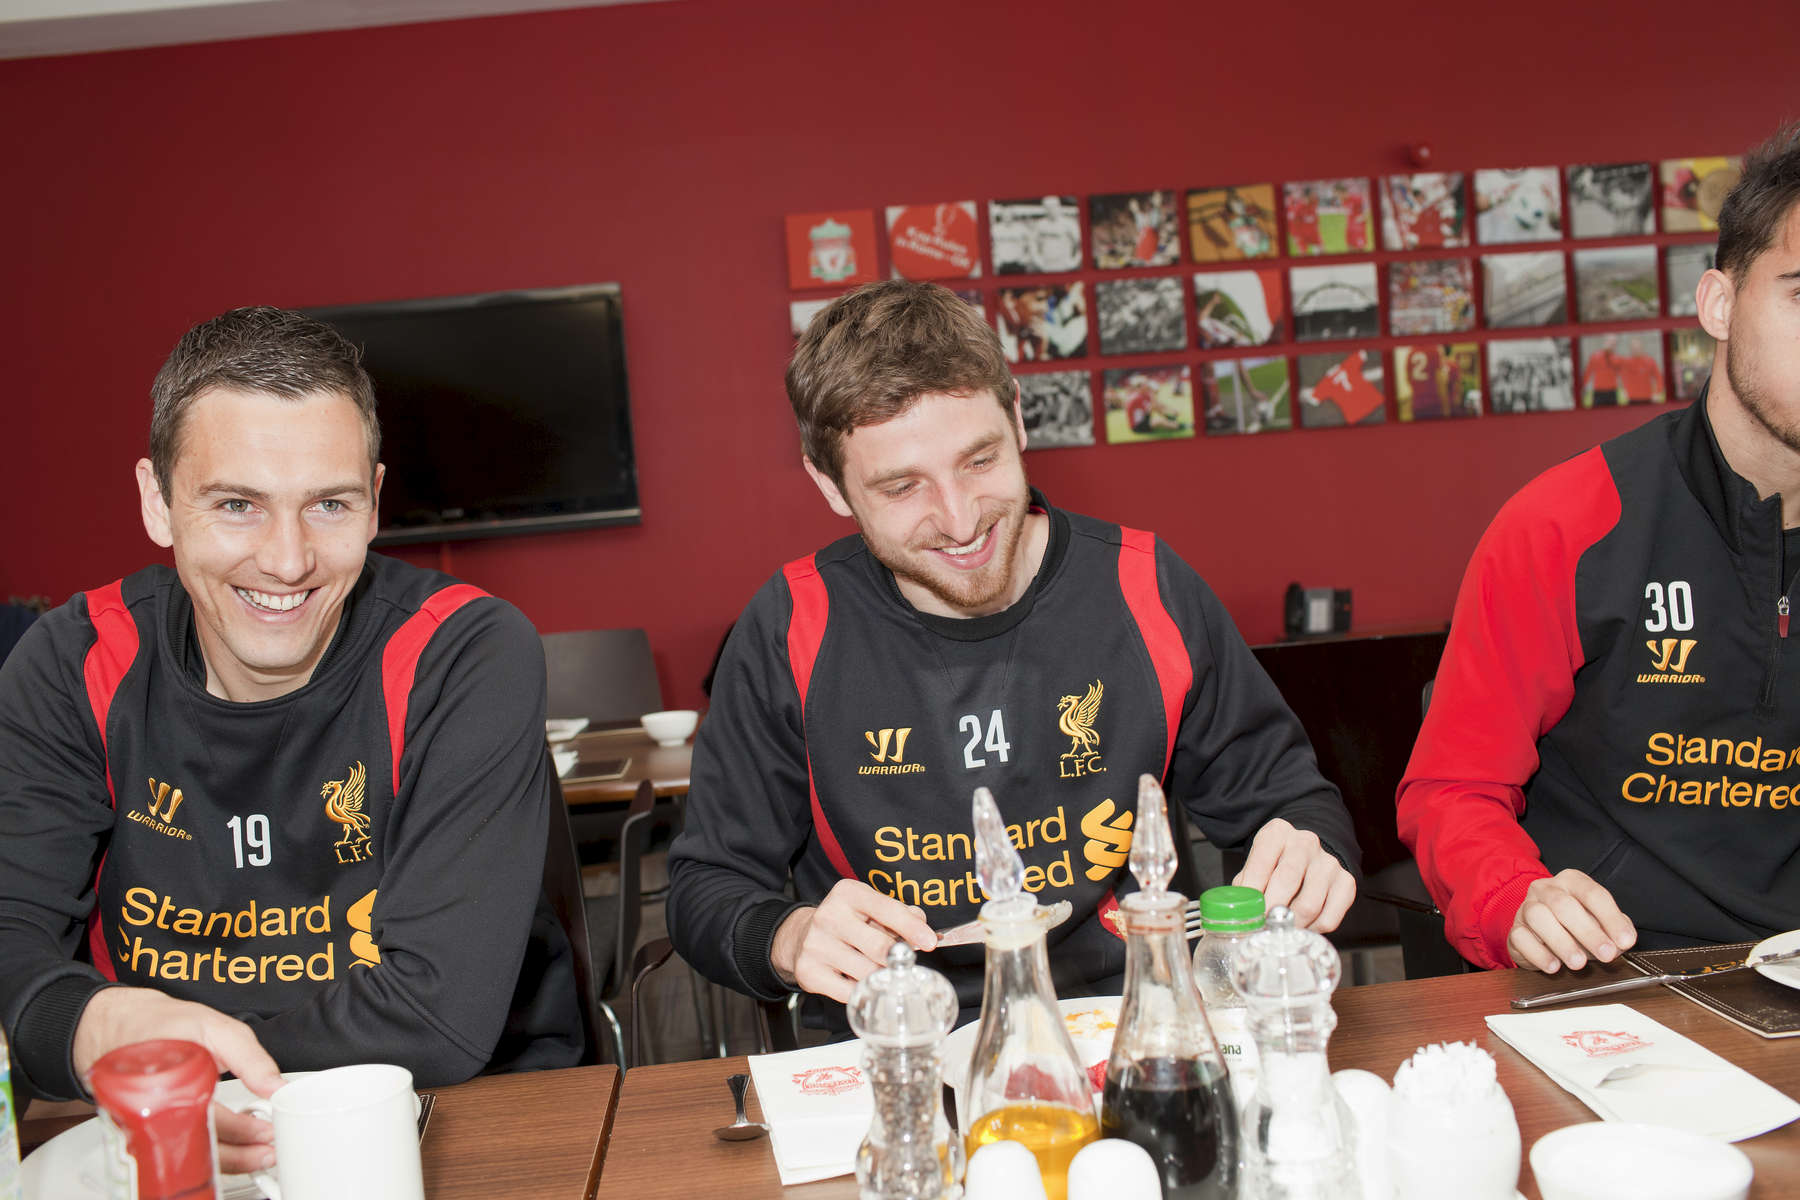 Liverpool FC players Stuart Downing (left) and Joe Allen (centre) share a joke over breakfast in the canteen at Melwood.Melwood is the Liverpool FC training ground, located in the West Derby area of Liverpool. It is seperate from the Liverpool Academy, which is based in Kirkby.Melwood was redeveloped in the early 2000′s with large input from then-manager Gerard Houllier and now features some of the best facilities in Europe. It has been the club's training ground since the fifties and was previously transformed into a top class facility by Bill Shankly.Facilities include sythetic pitches, rehabilitation rooms, press and meeting rooms, gymnasium, swimming pool, restaurant and recreational facilities.